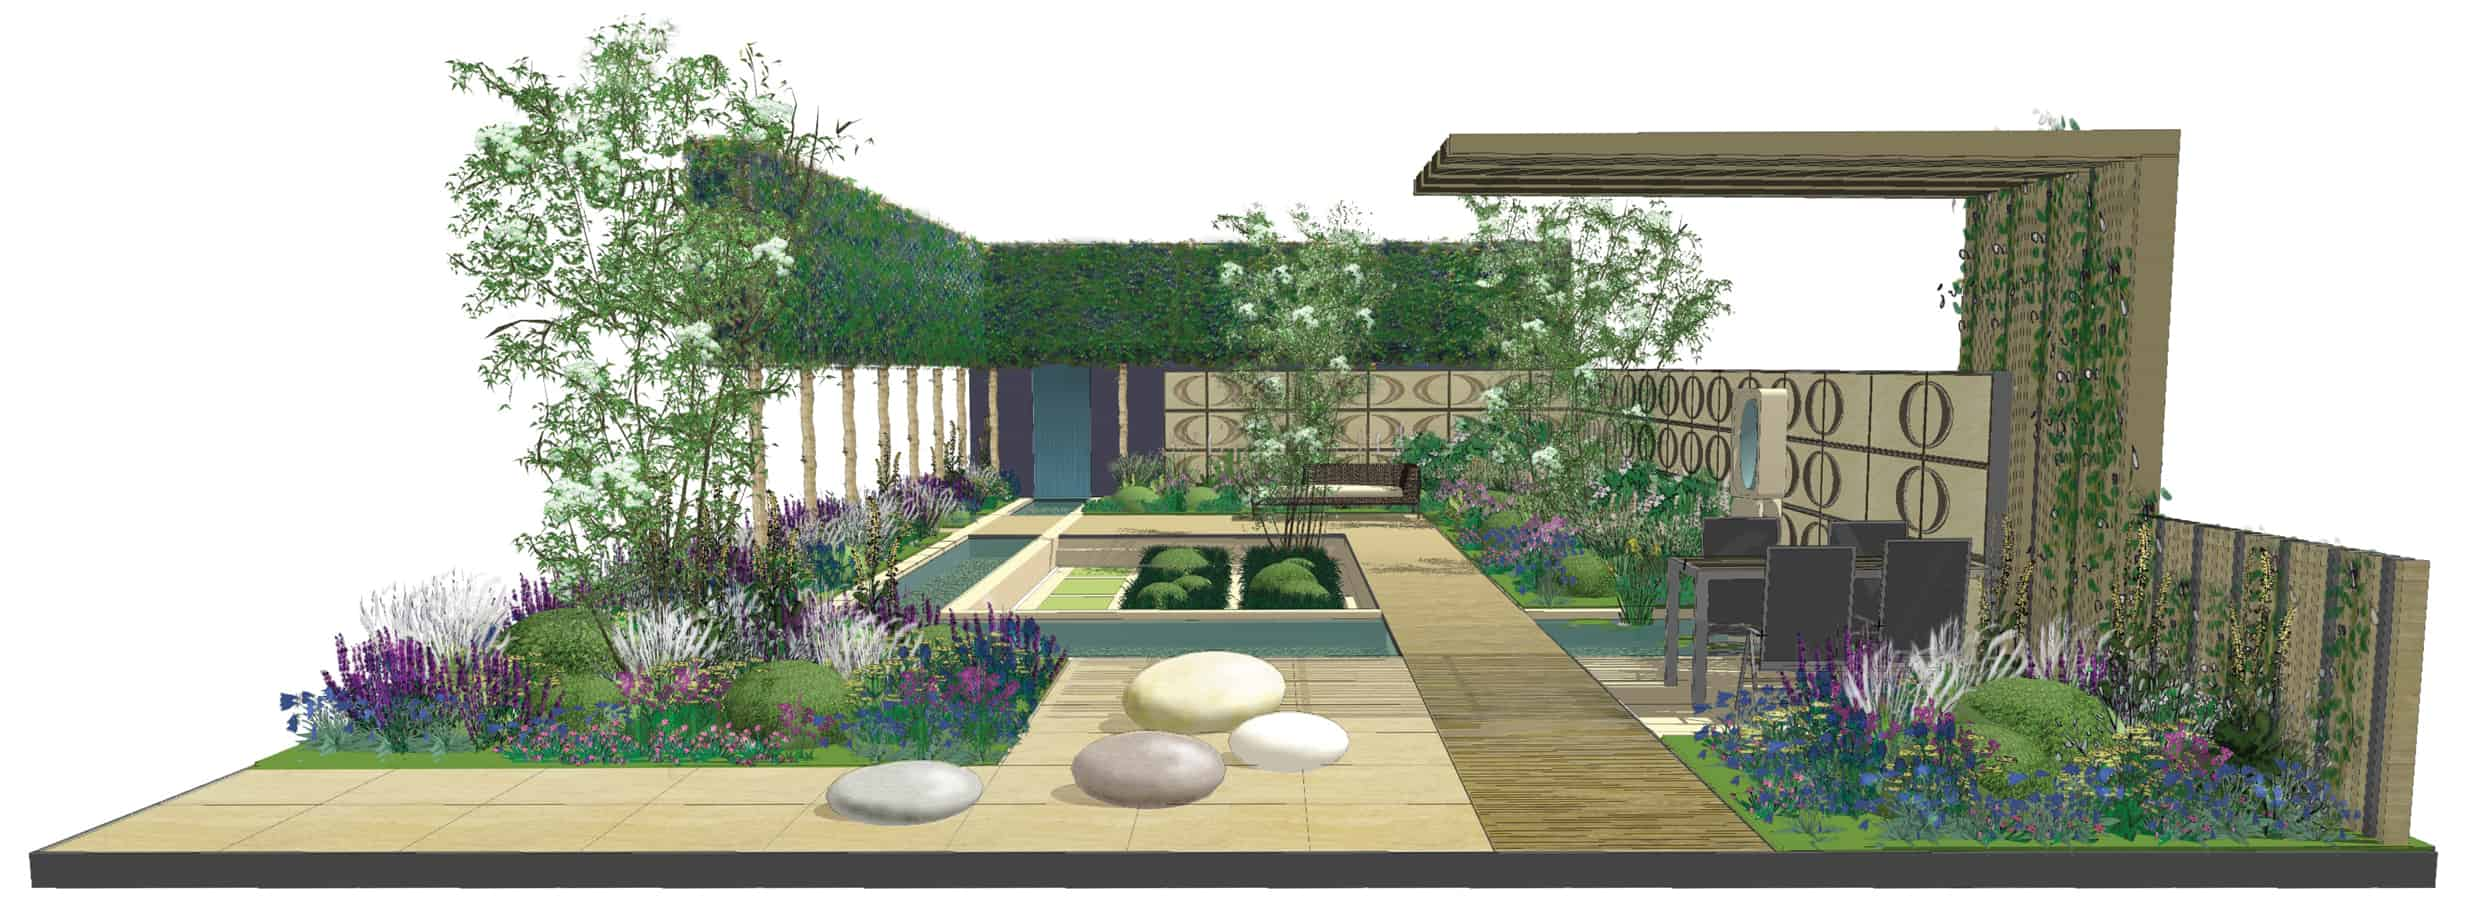 Garden design pro landscaper for Best apps for garden and landscaping designs